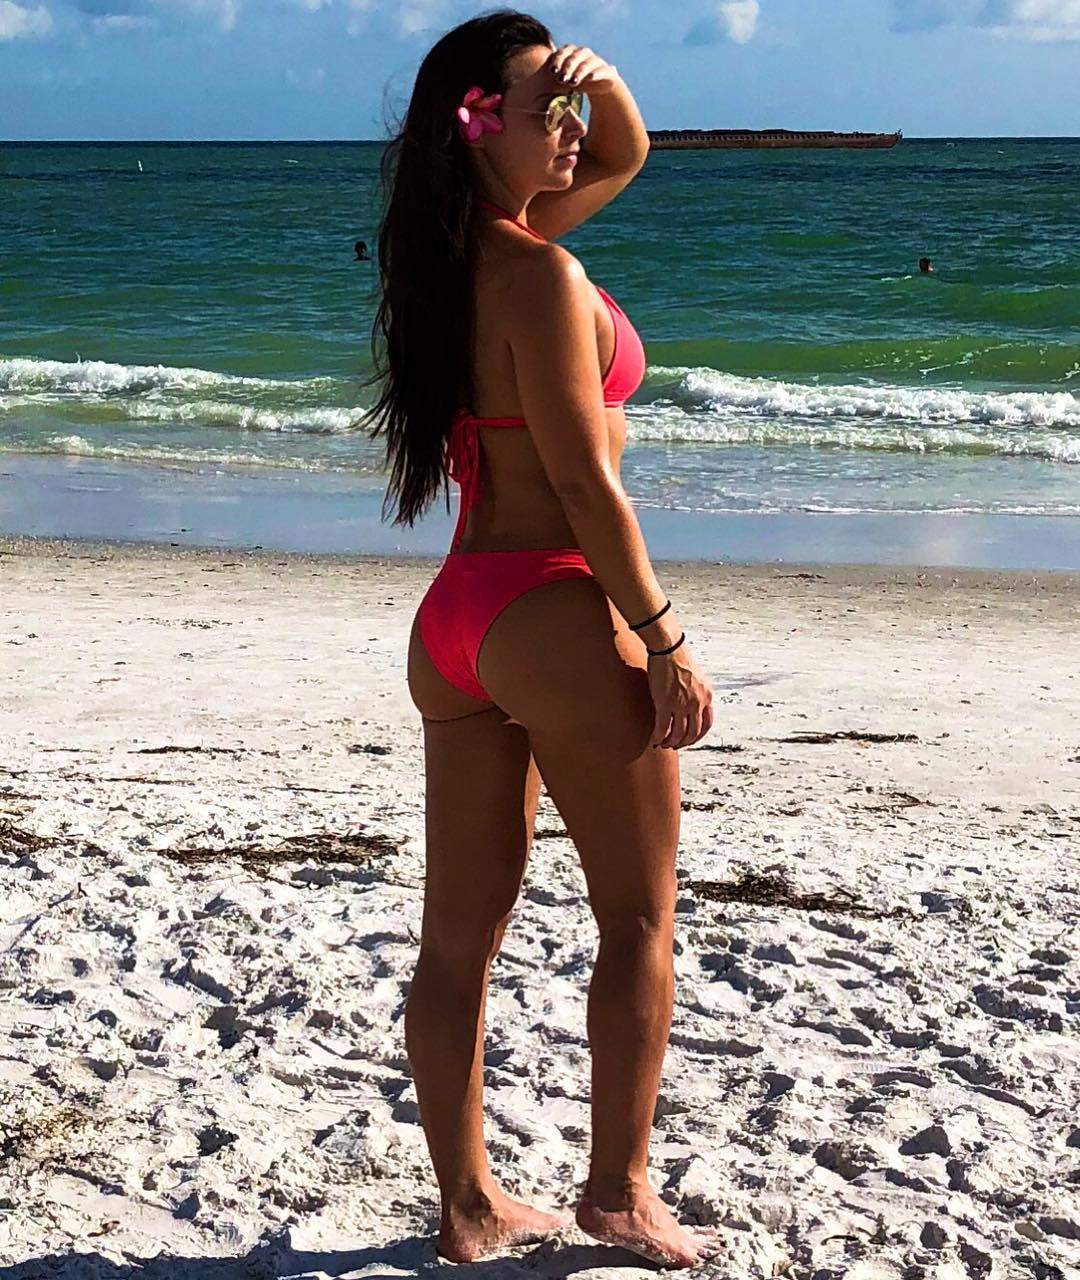 Tenille Dashwood on Beach